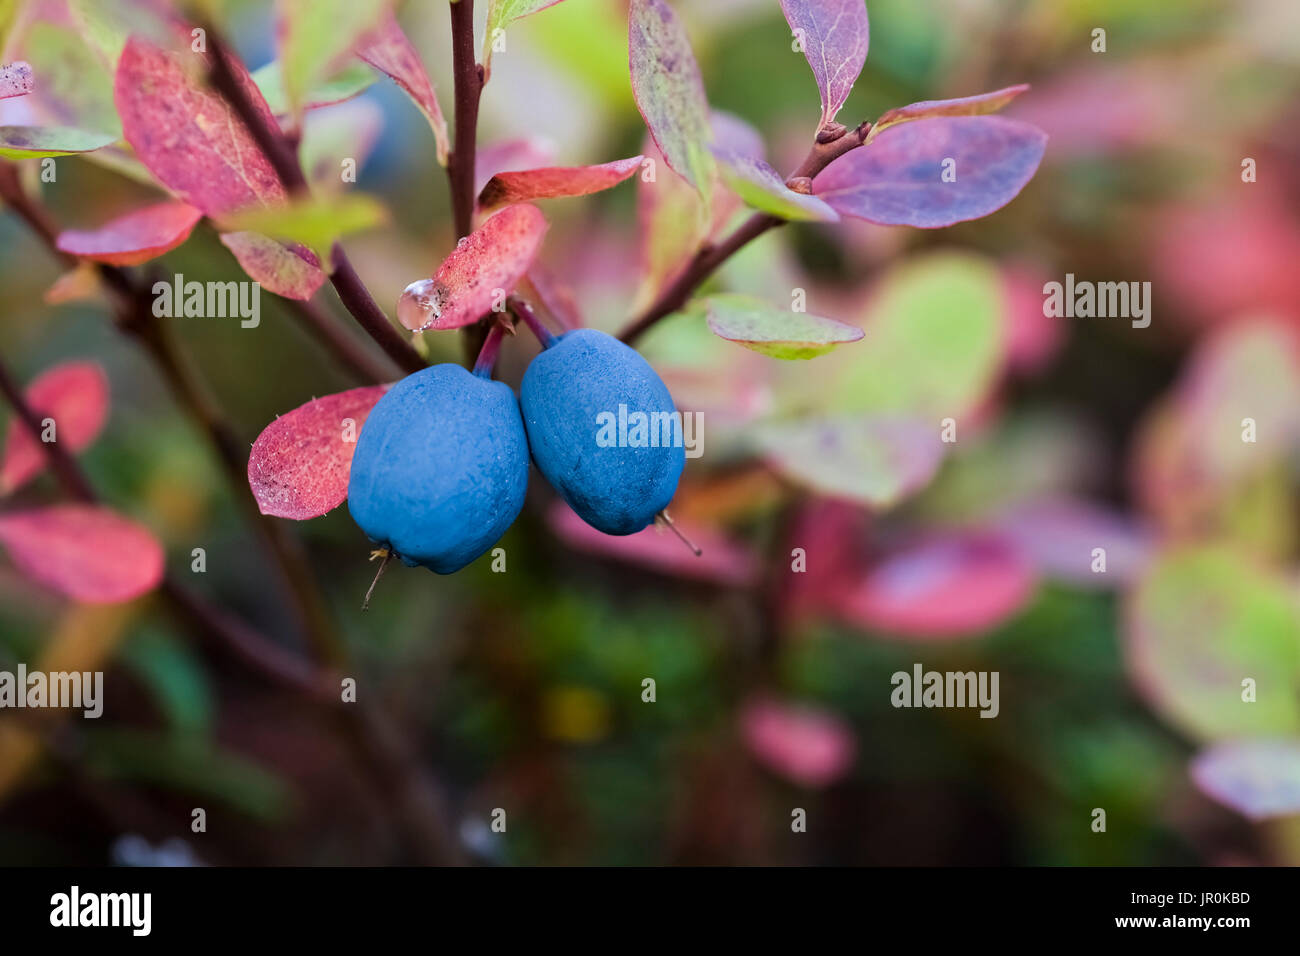 Close-Up Of Blueberries On A Lowbush Blueberry Plant (Vaccinium Angustifolium); Alaska, United States Of America - Stock Image